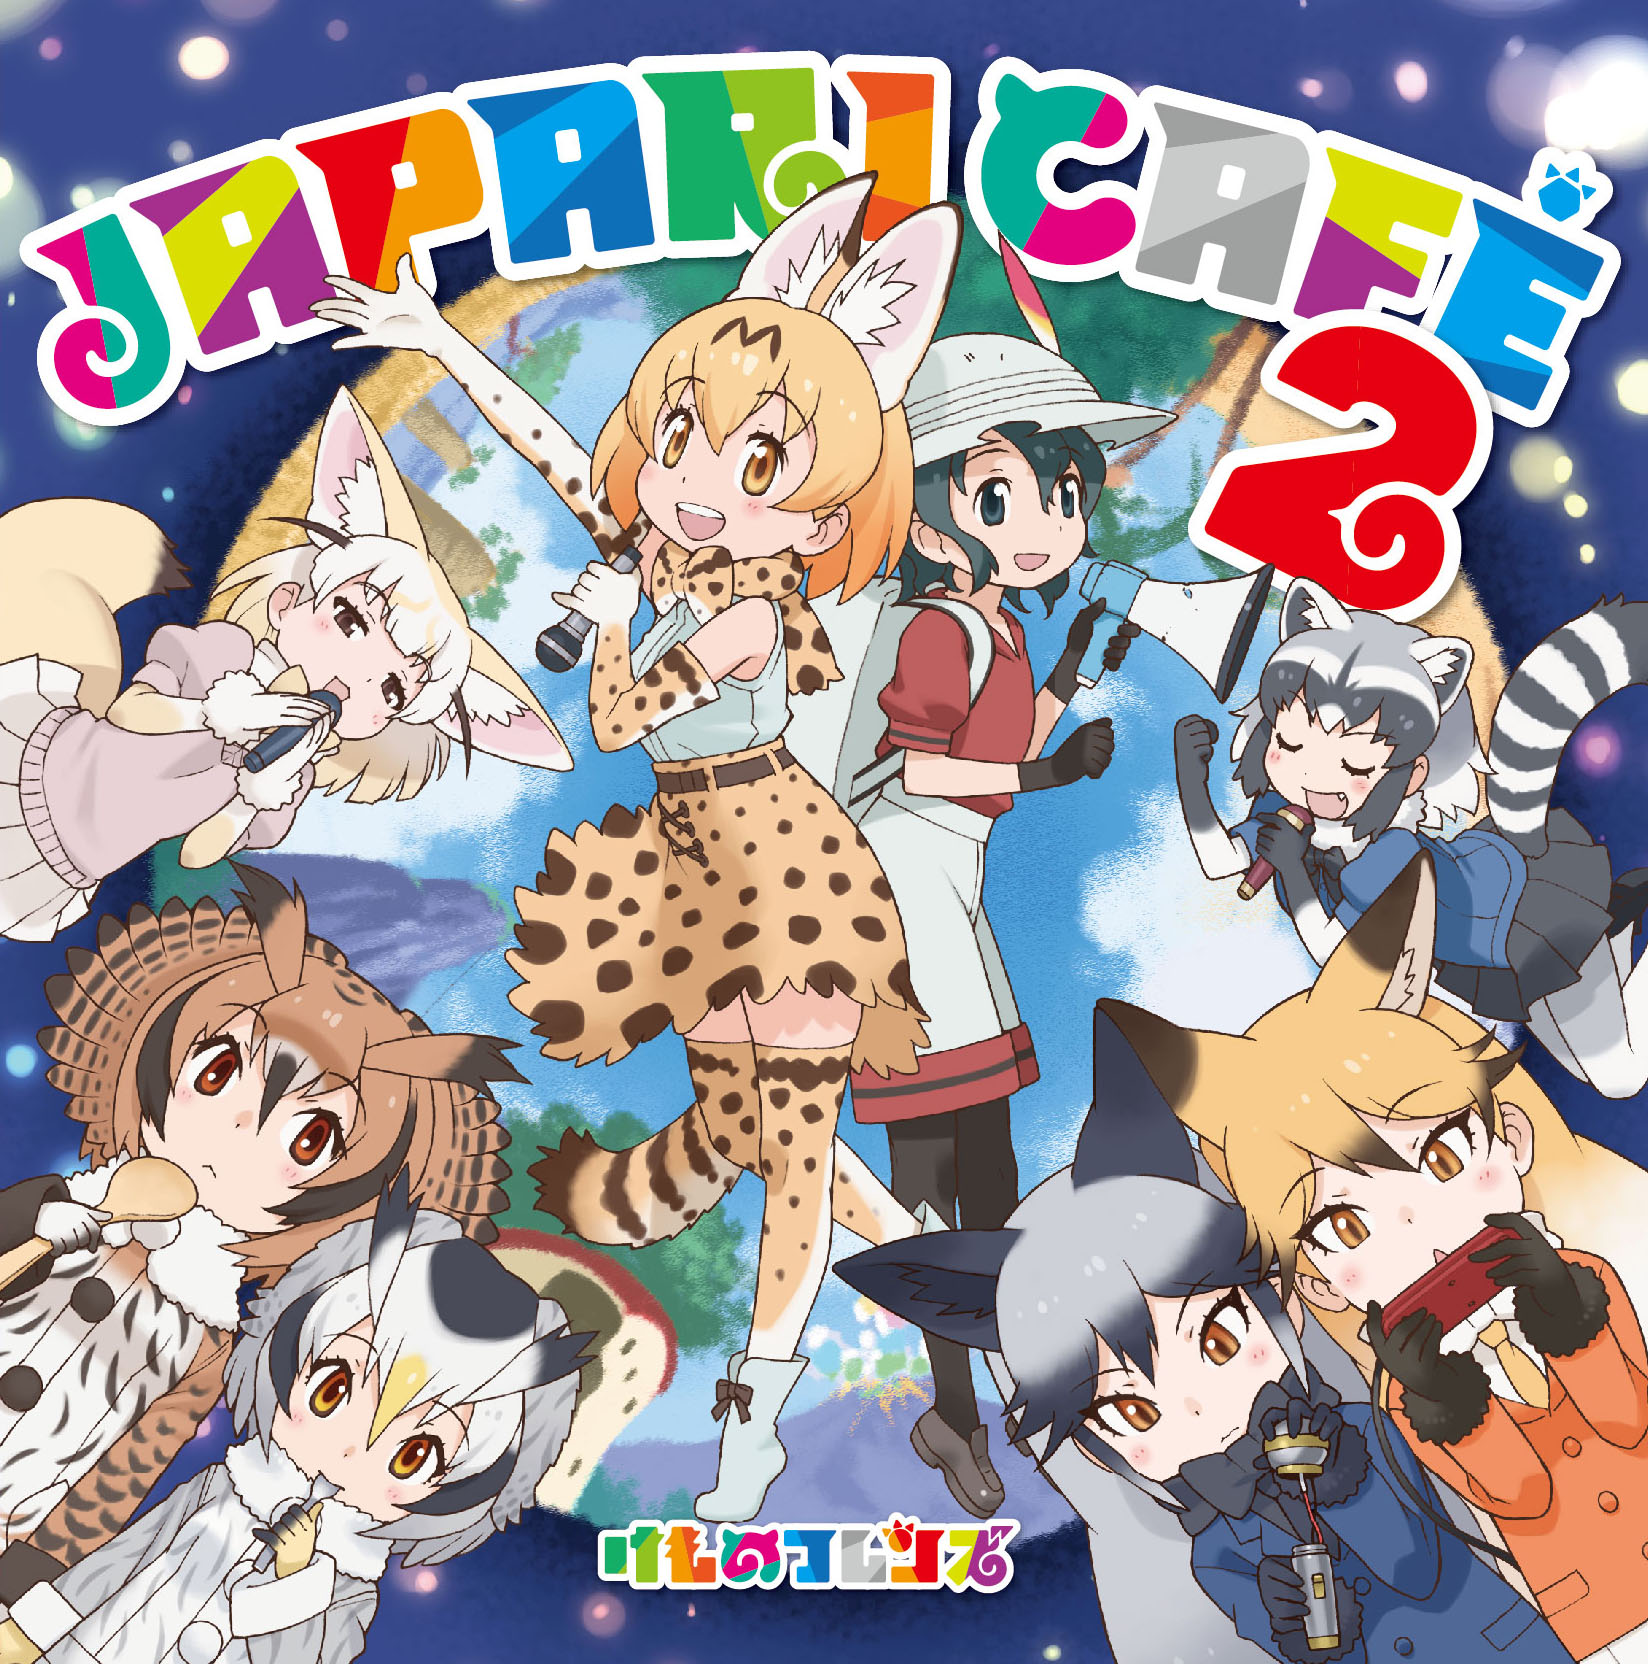 Japari Cafe 2 Album Art.jpg